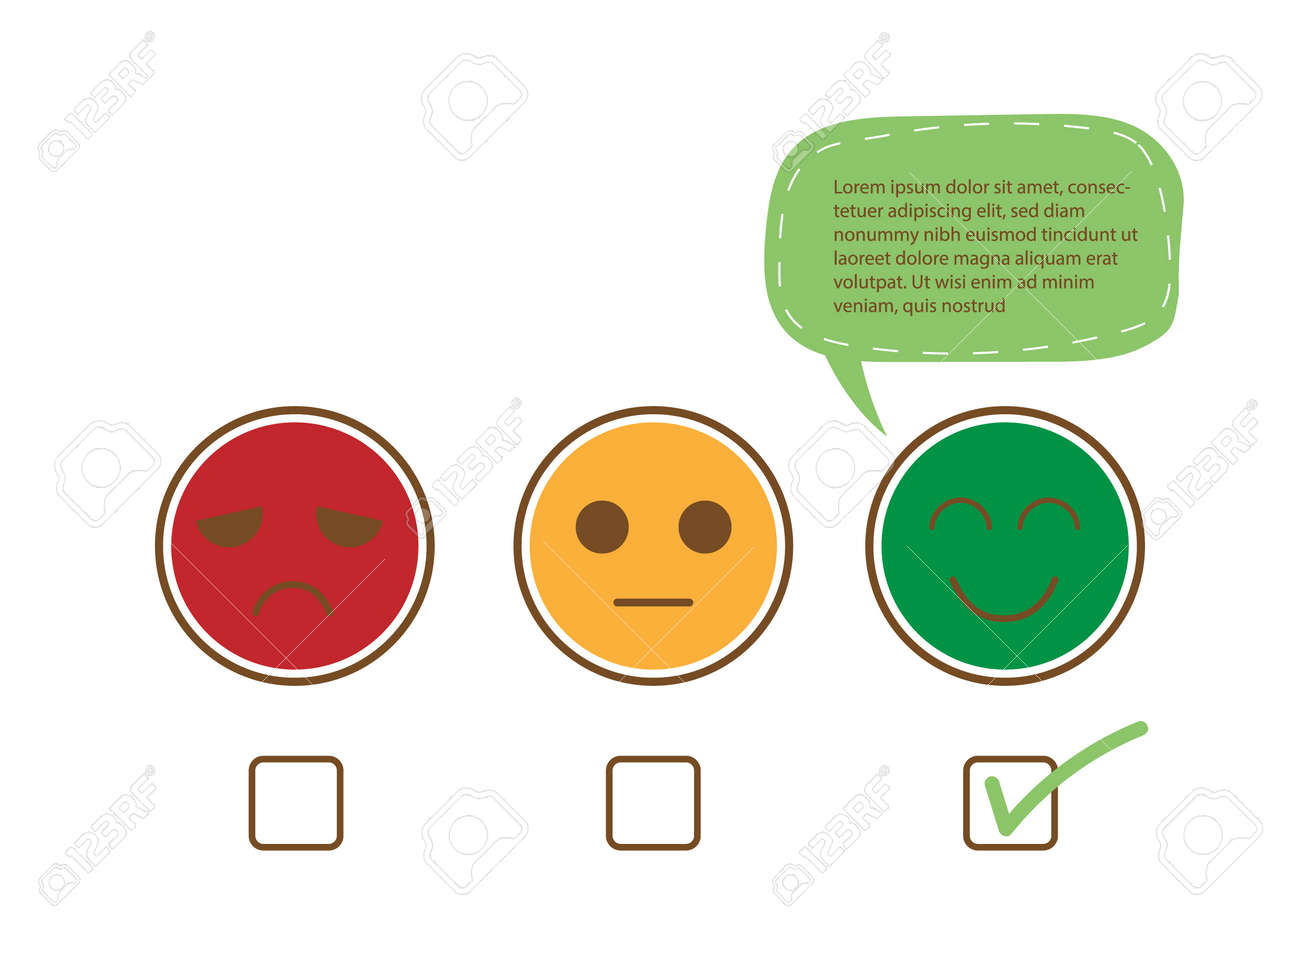 Tick sign on happy smile face with speech bubble for complain, good feedback rating positive customer service review, experience, satisfaction survey ,assessment and world mental health day concept. - 158545544